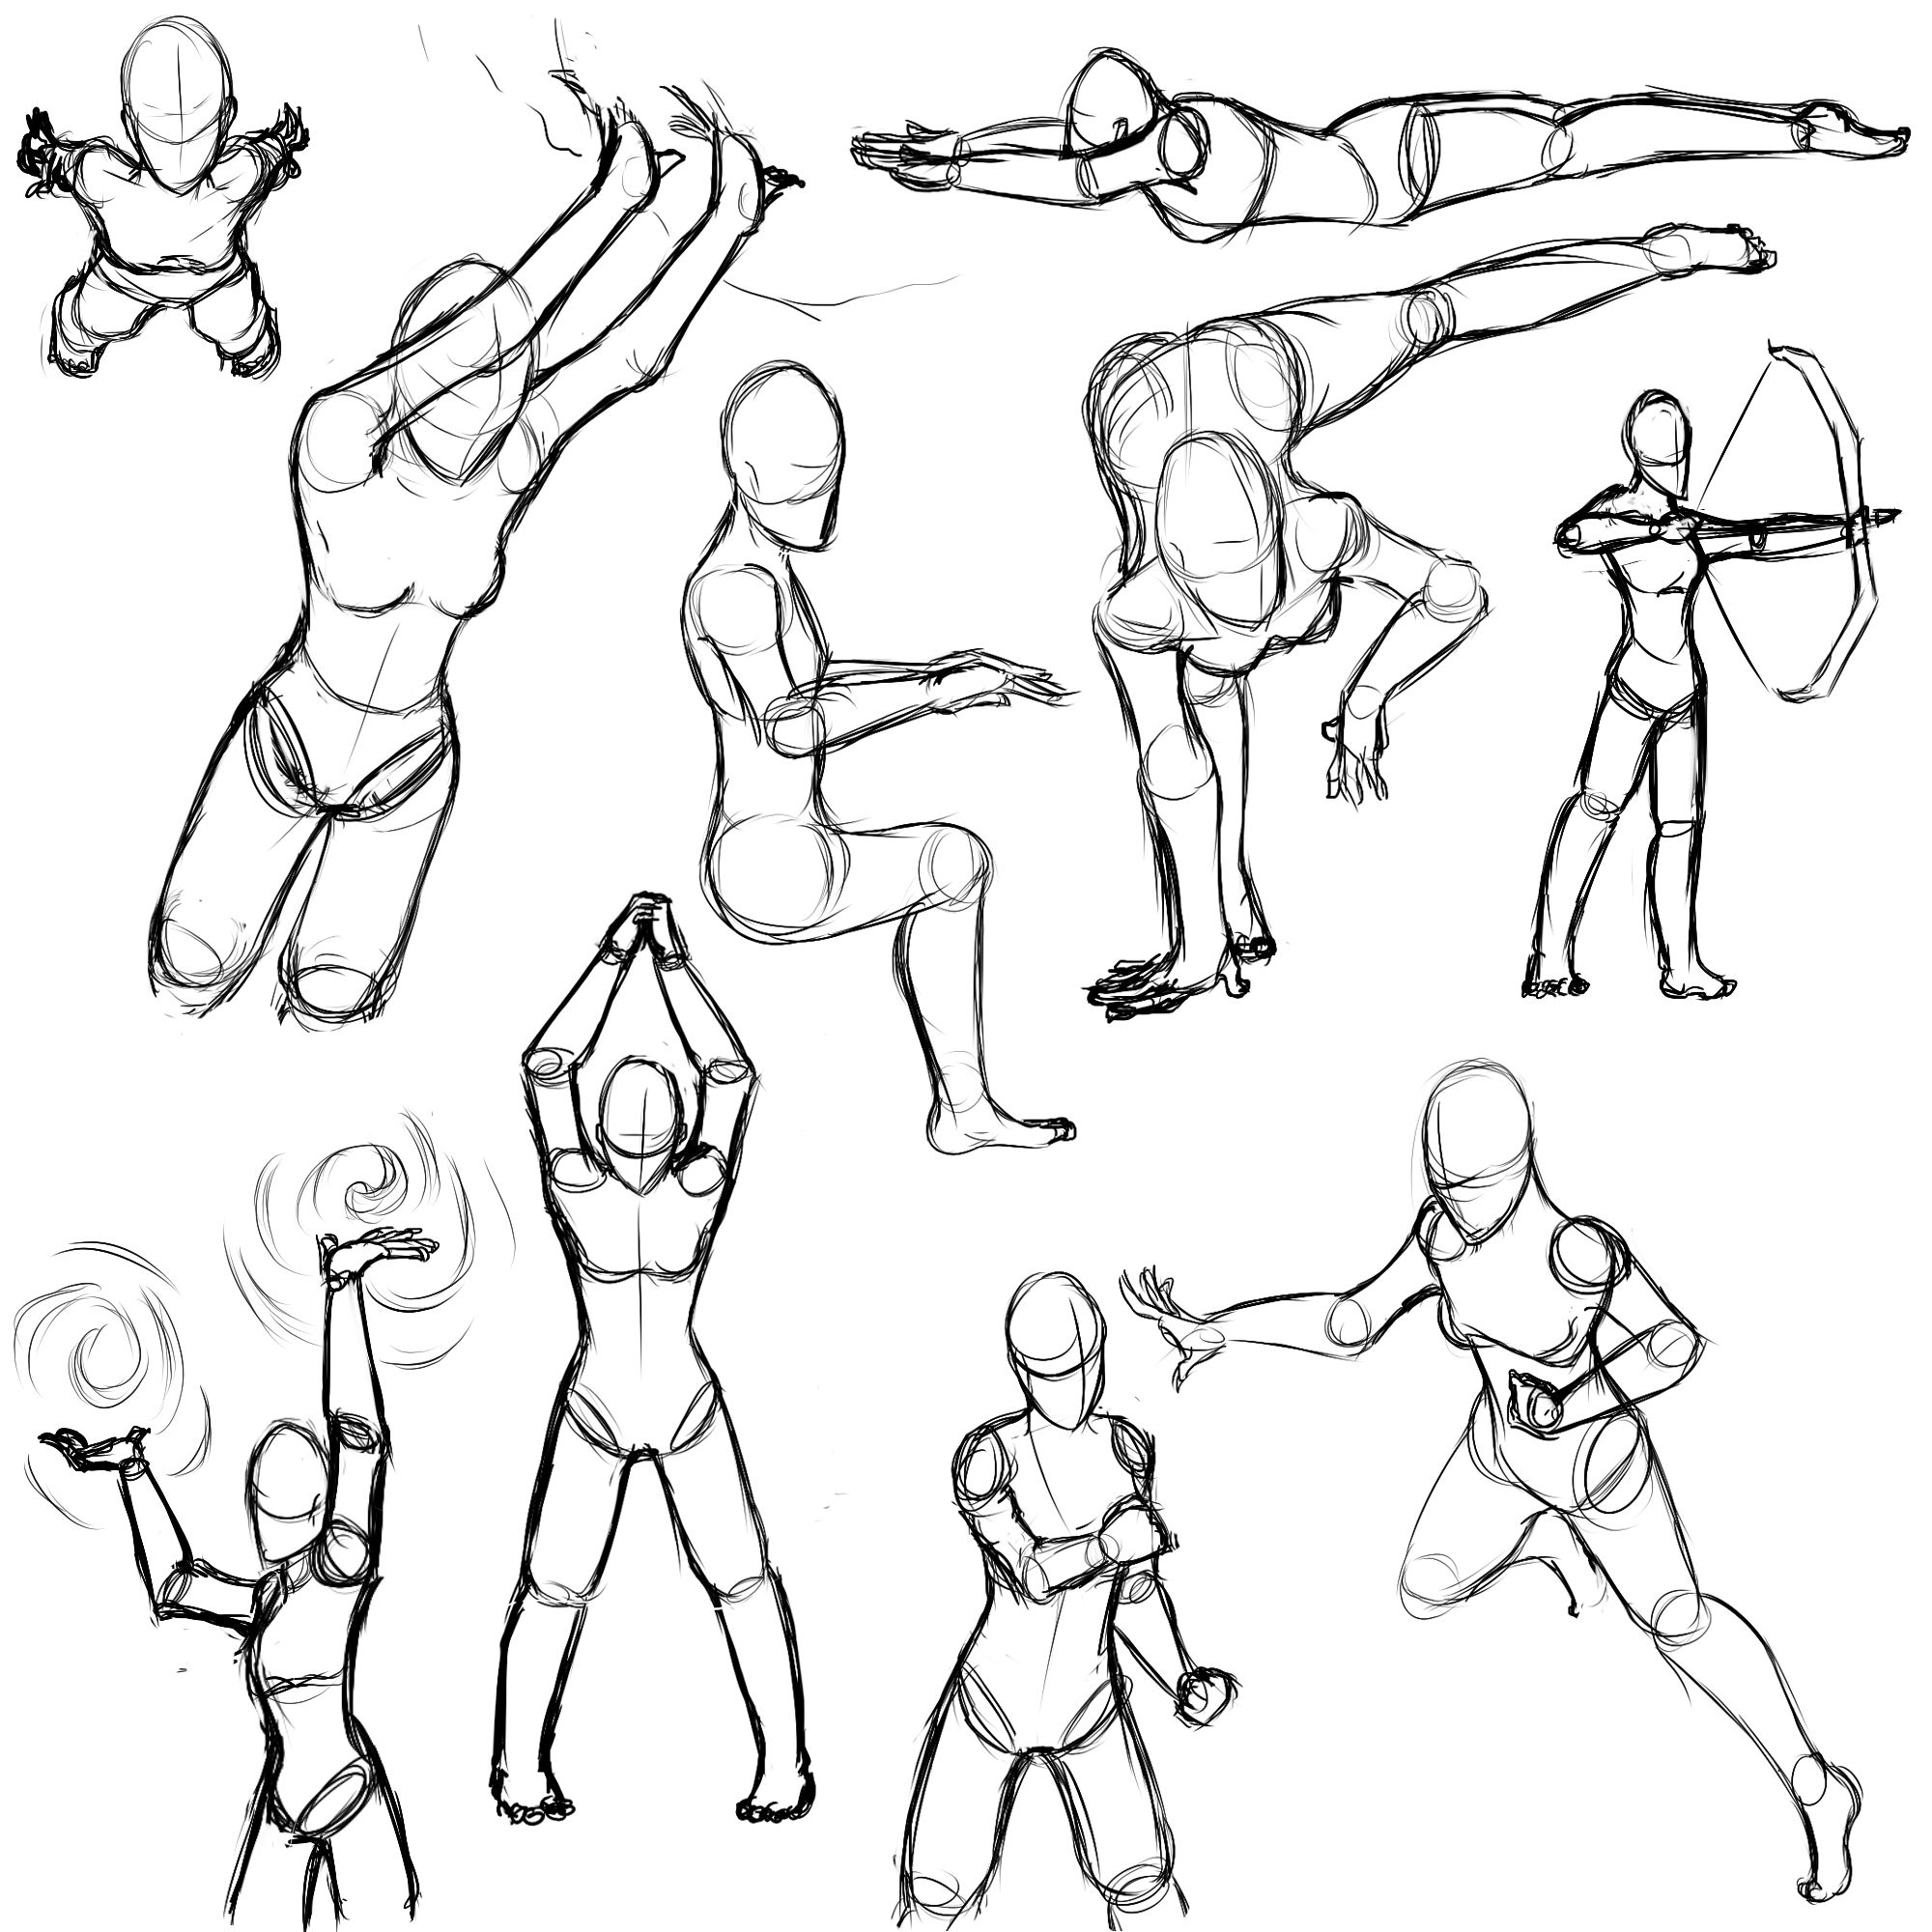 Female Action Poses By Sefti On Deviantart Female Action Poses Action Poses Drawing Art Poses